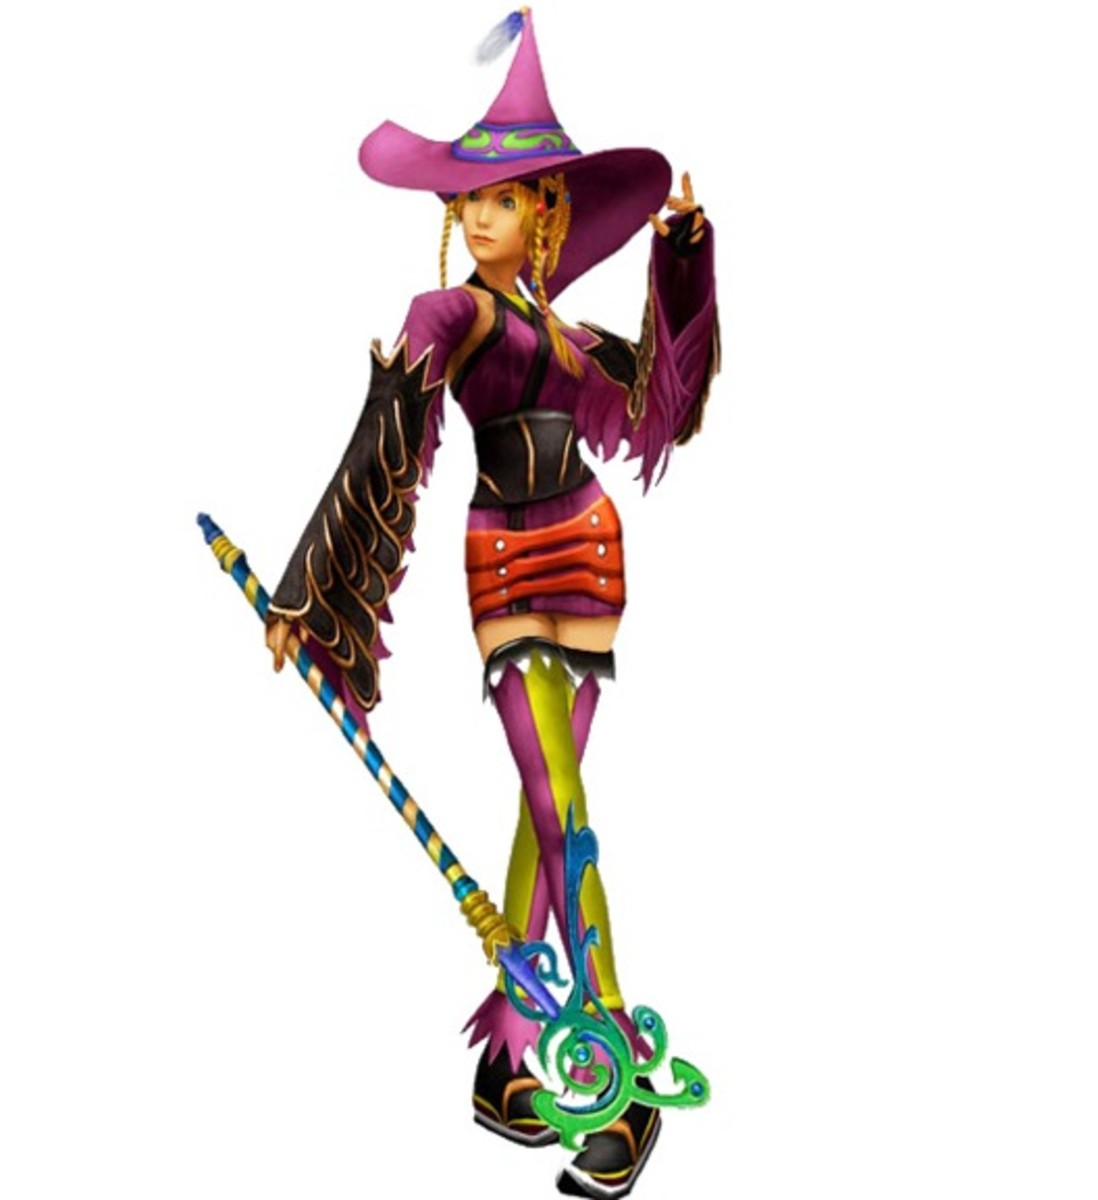 Rikku as a Black Mage